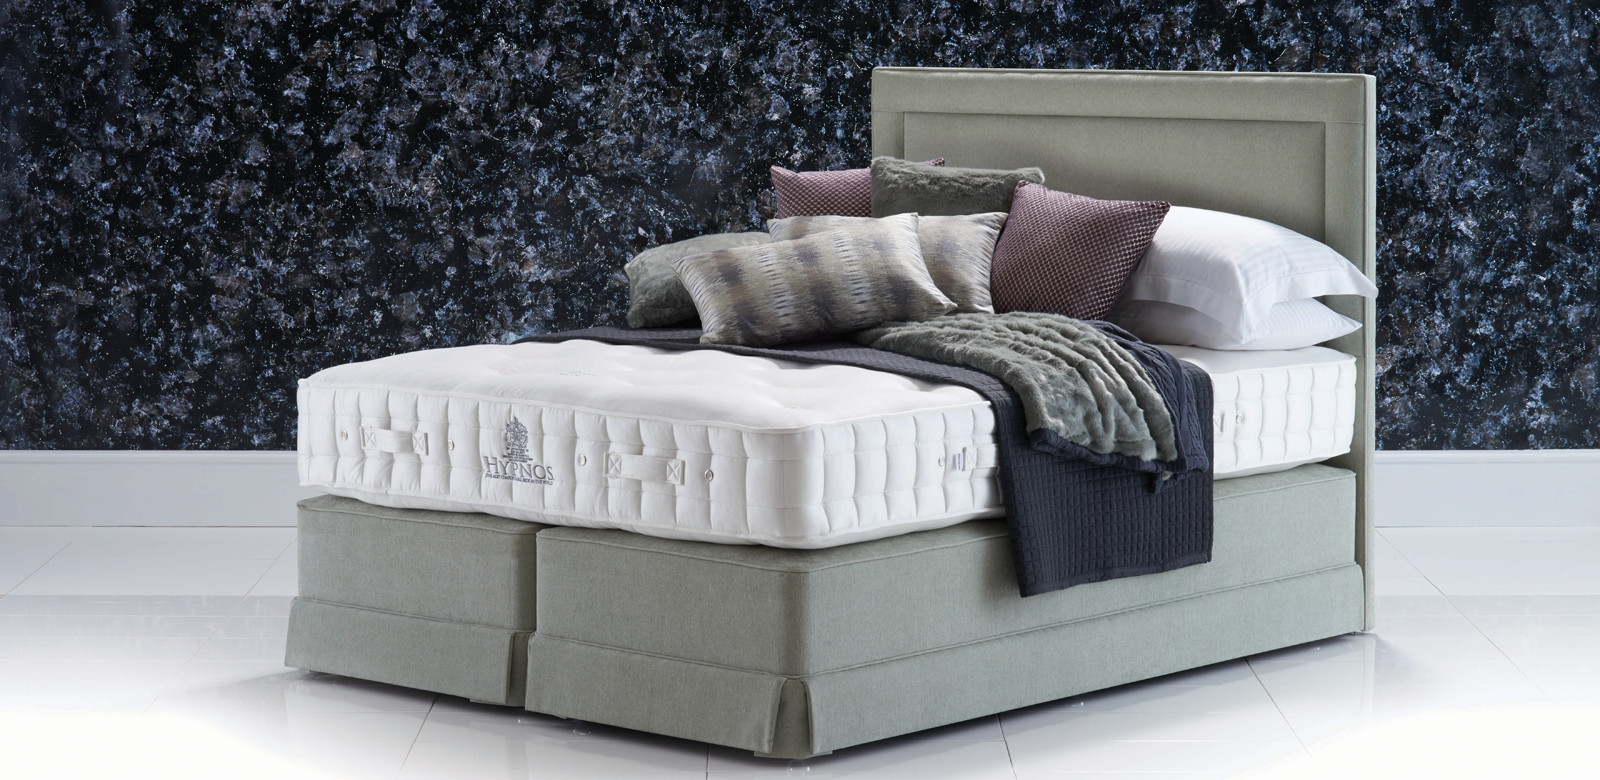 Beautyrest Aspen Plush Mattress Inspirational The Natural Fort Inside Mcdade Graphite 2 Piece Sectionals With Raf Chaise (Image 4 of 25)